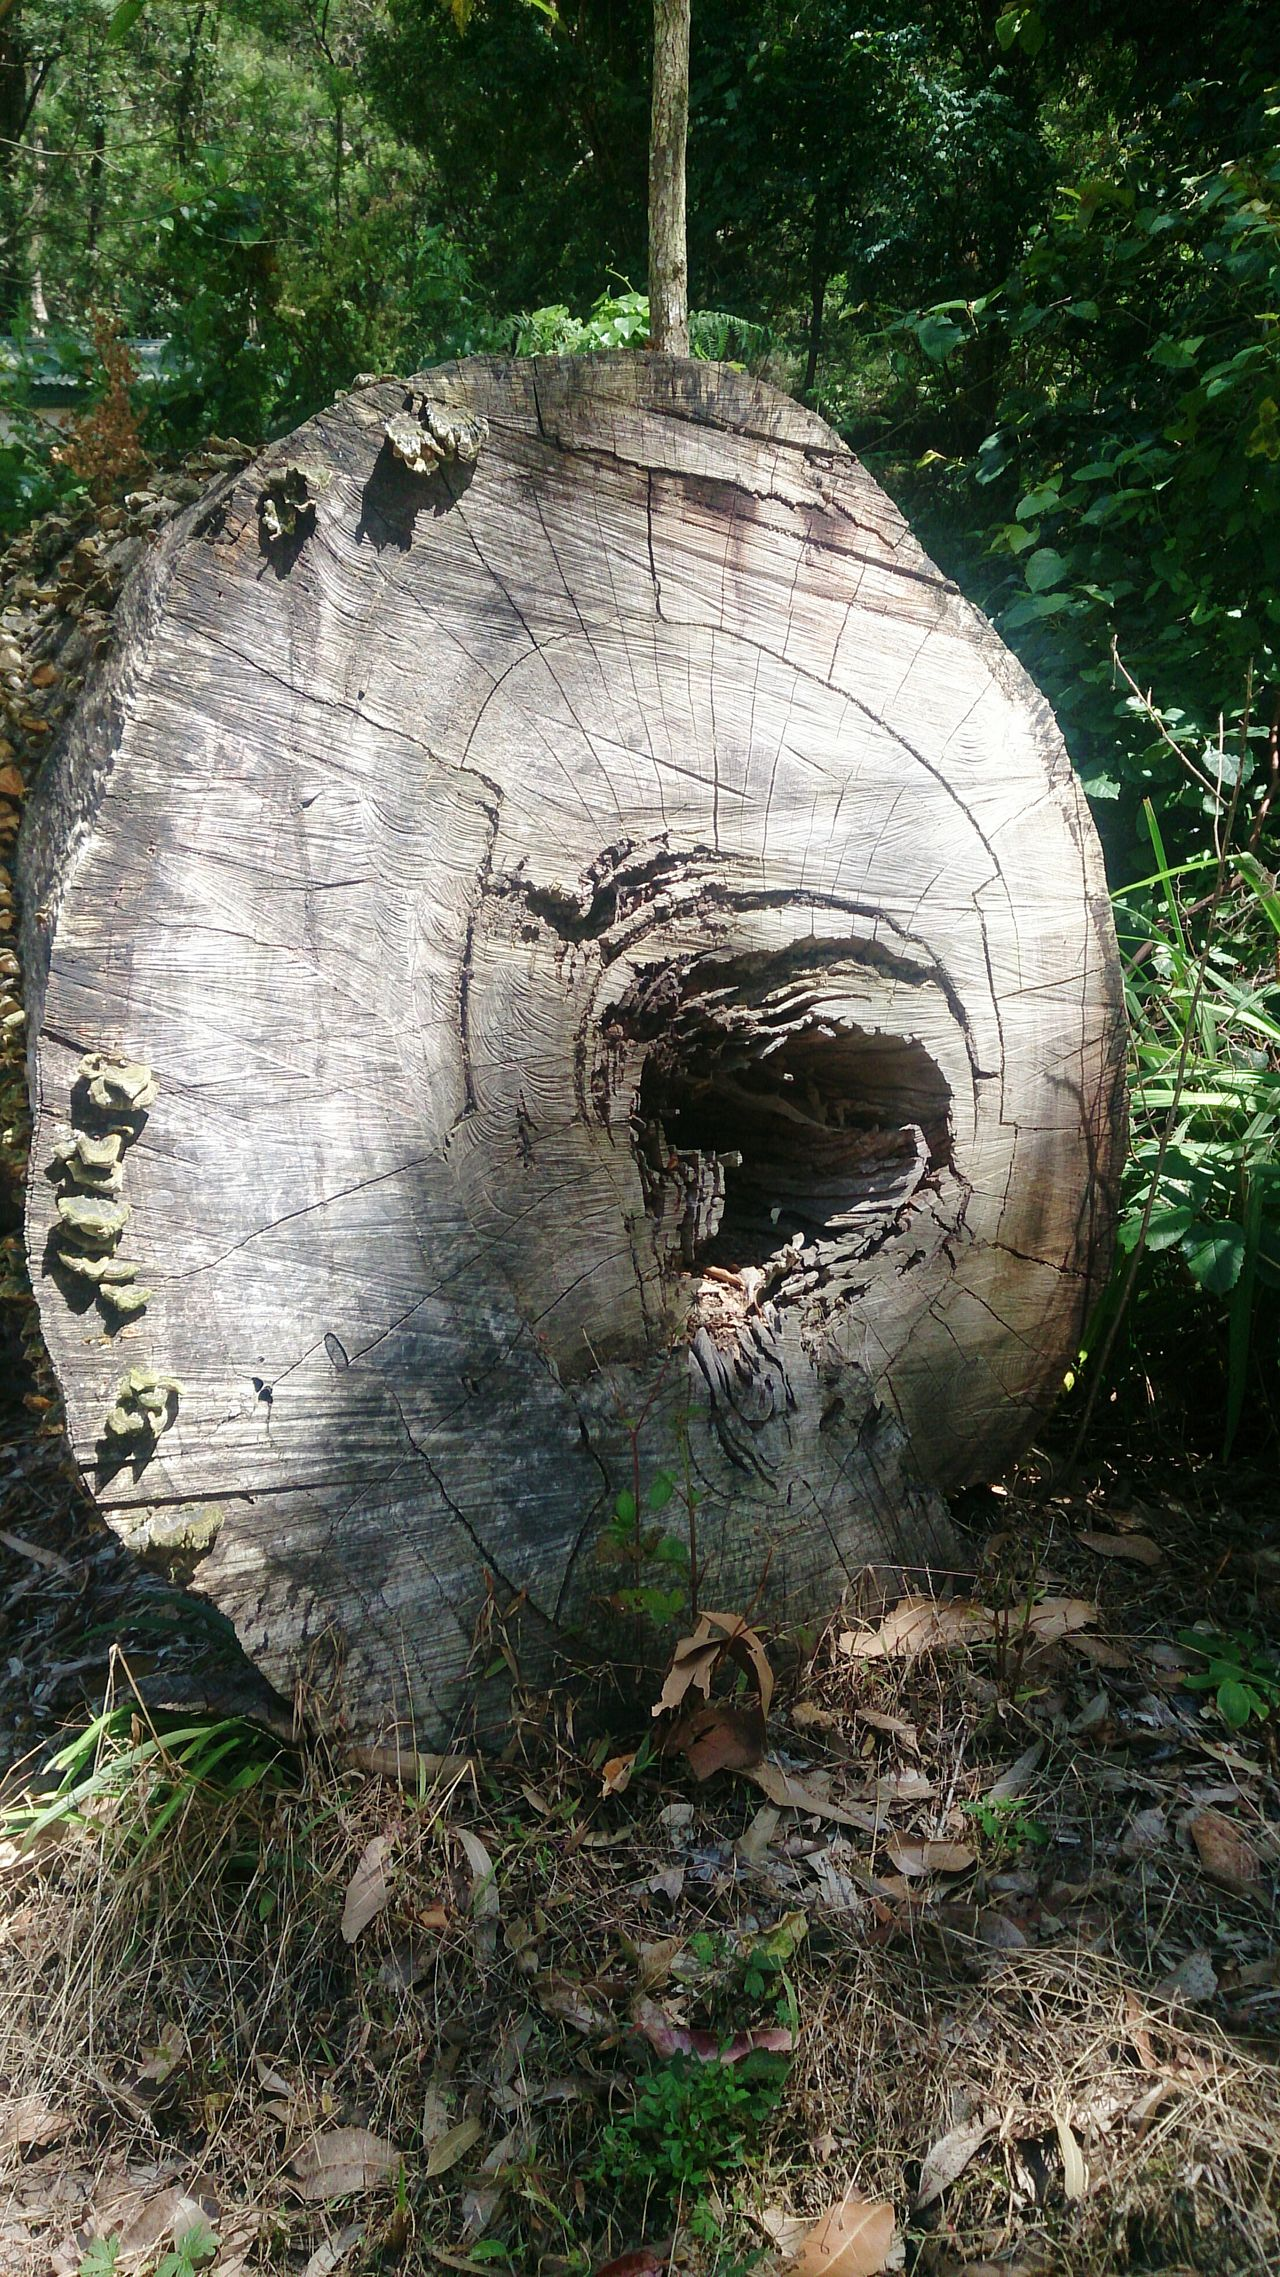 The Log Timber Dead Tree Forest Photography Life in a tree Dead Tree Giving Life